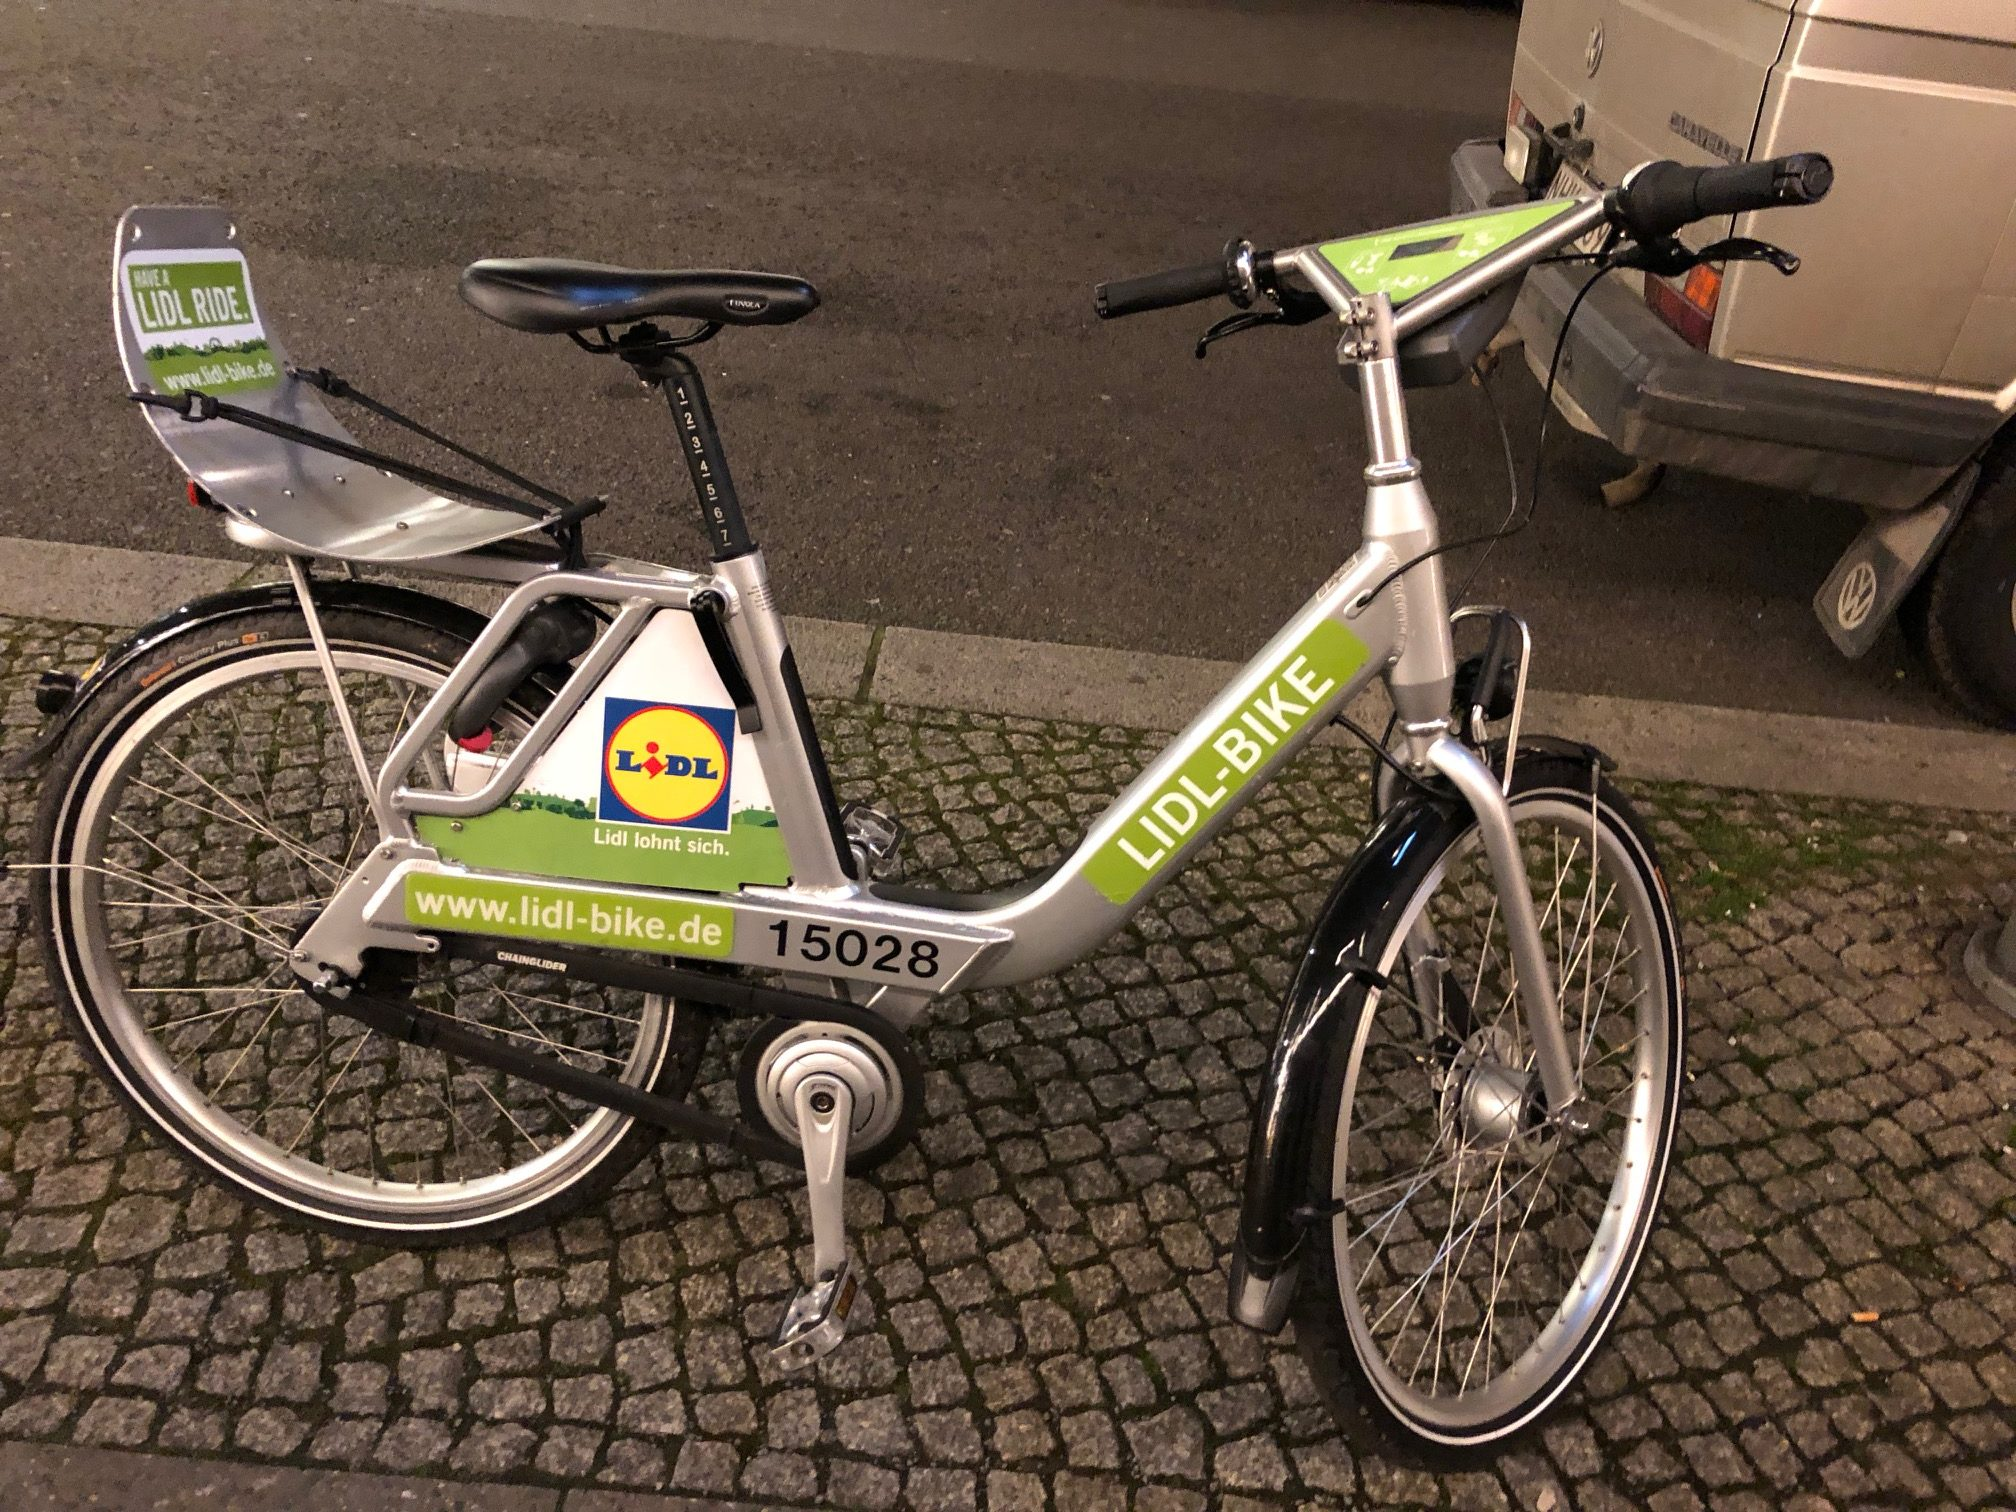 LIDL-BIKE is a member of the Call a Bike family - and it rocks!